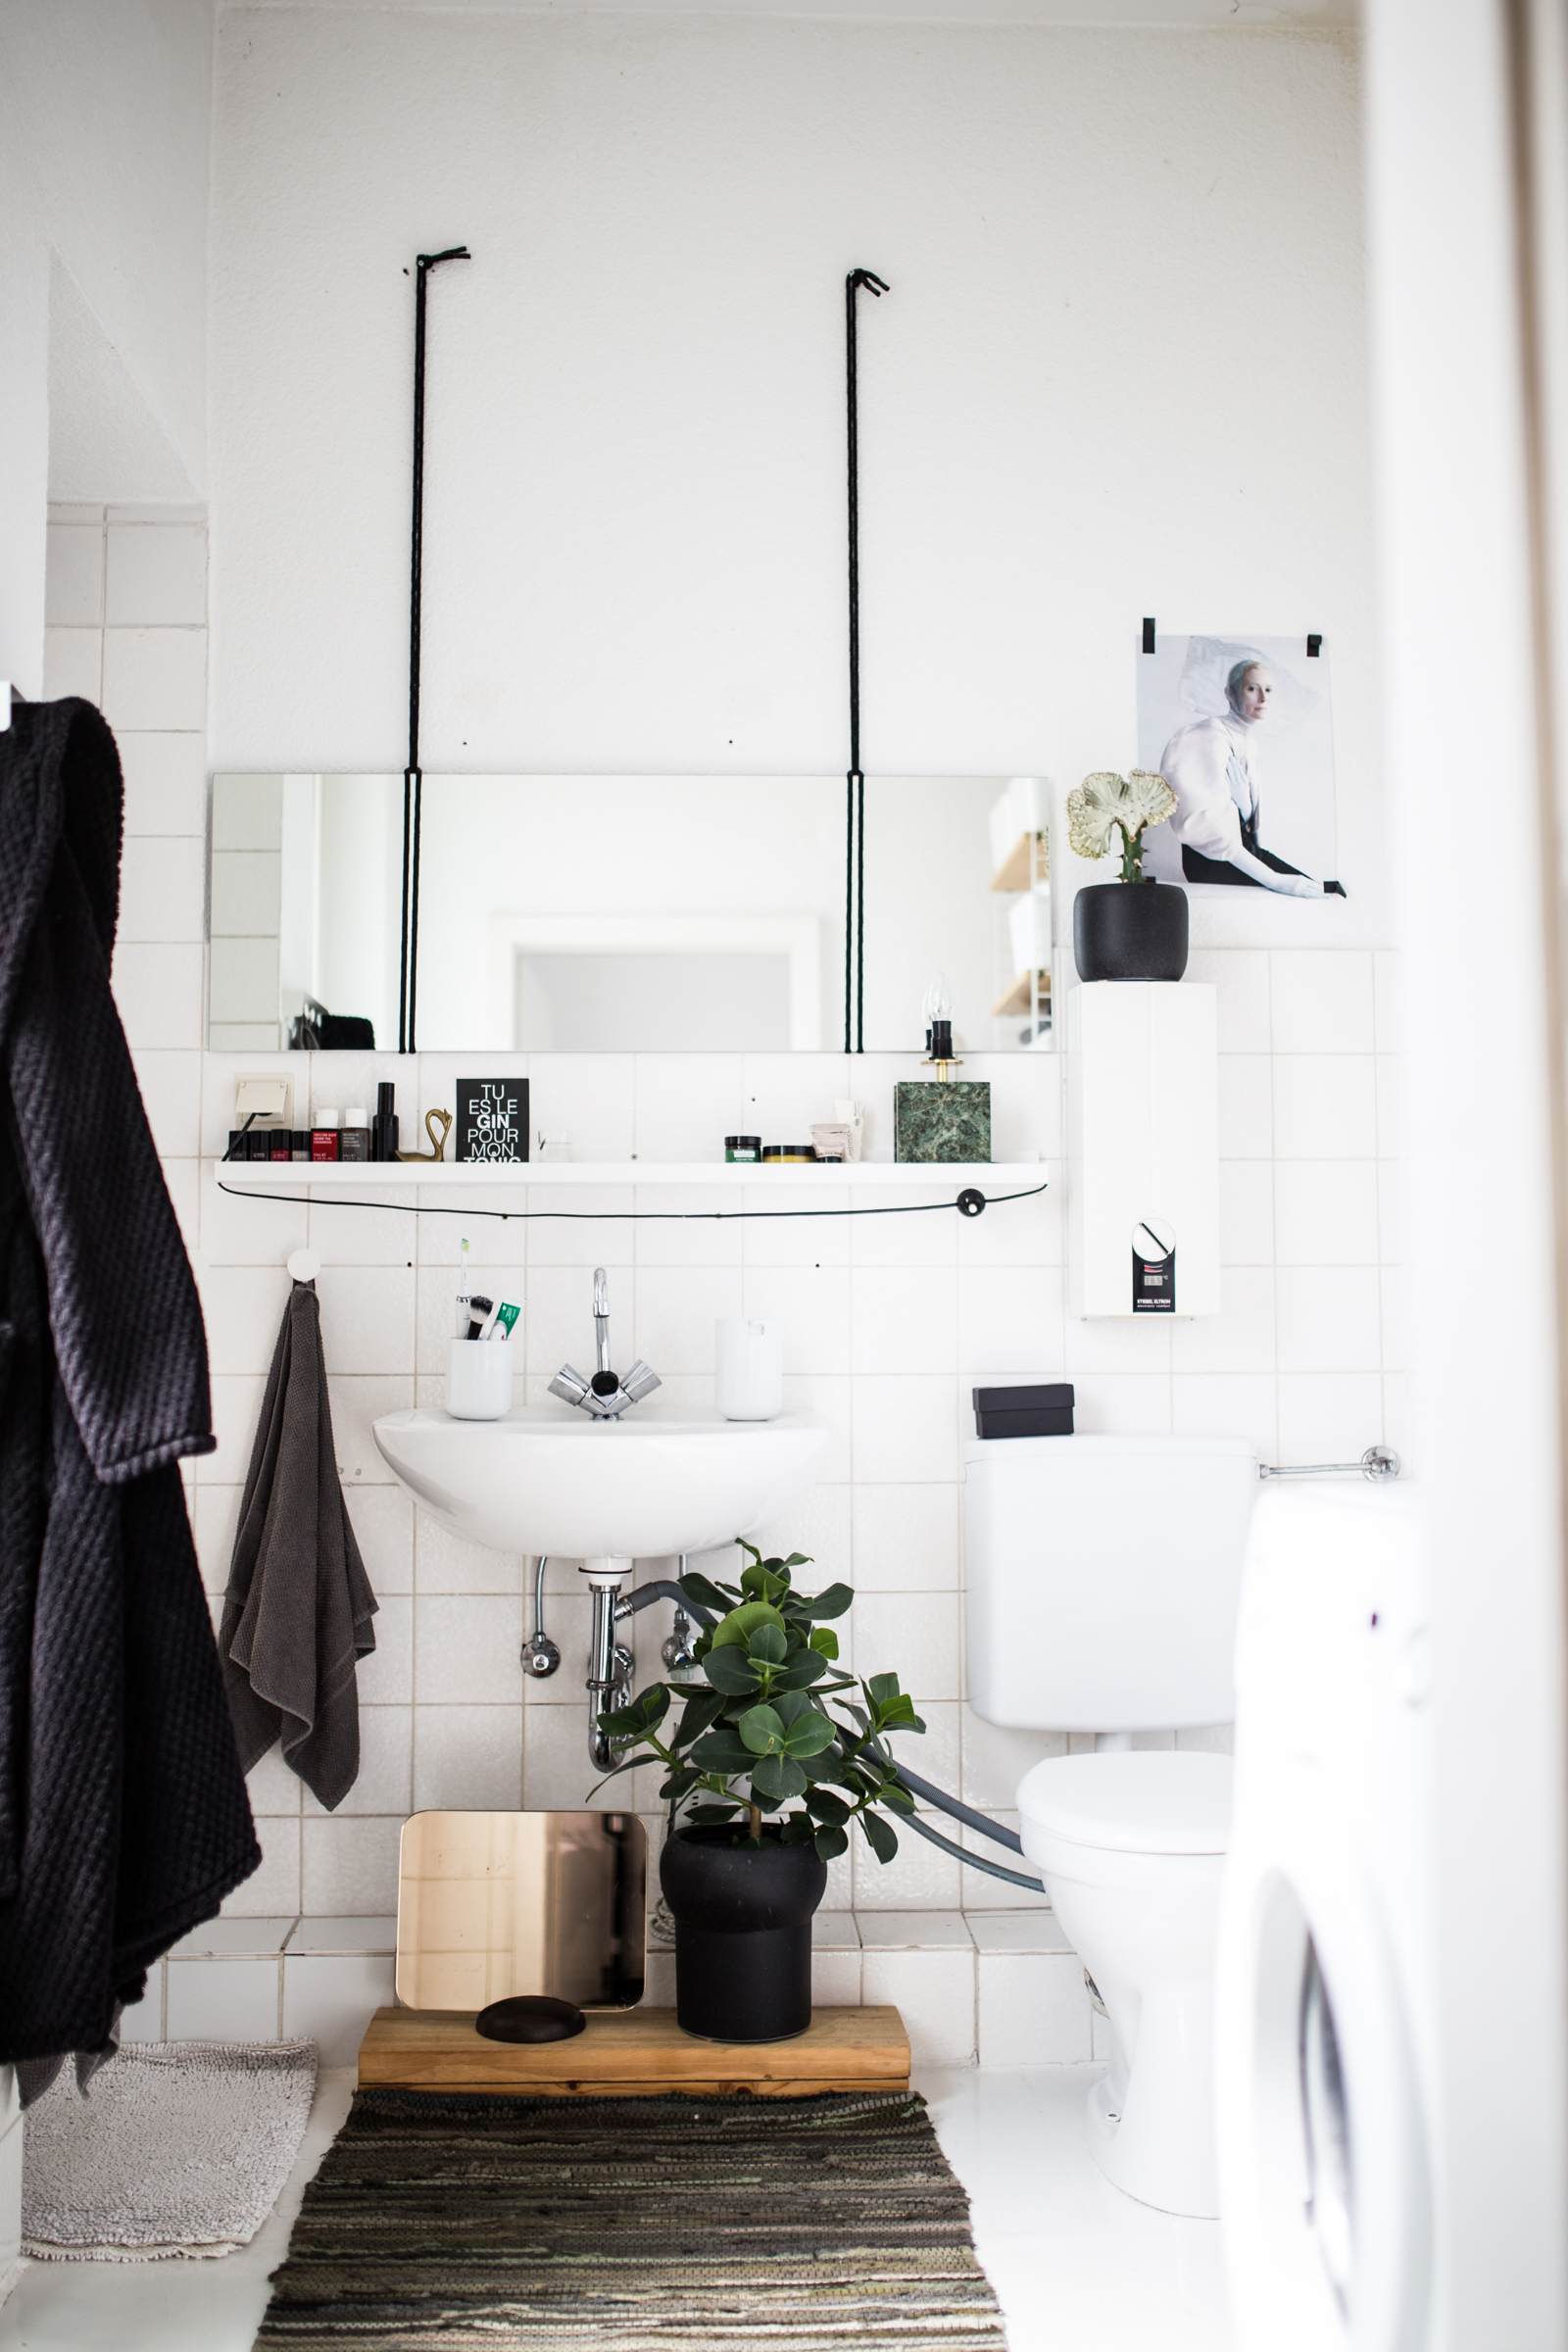 Homestory in Hamburg Ottensen // Badezimmer // Bathroom